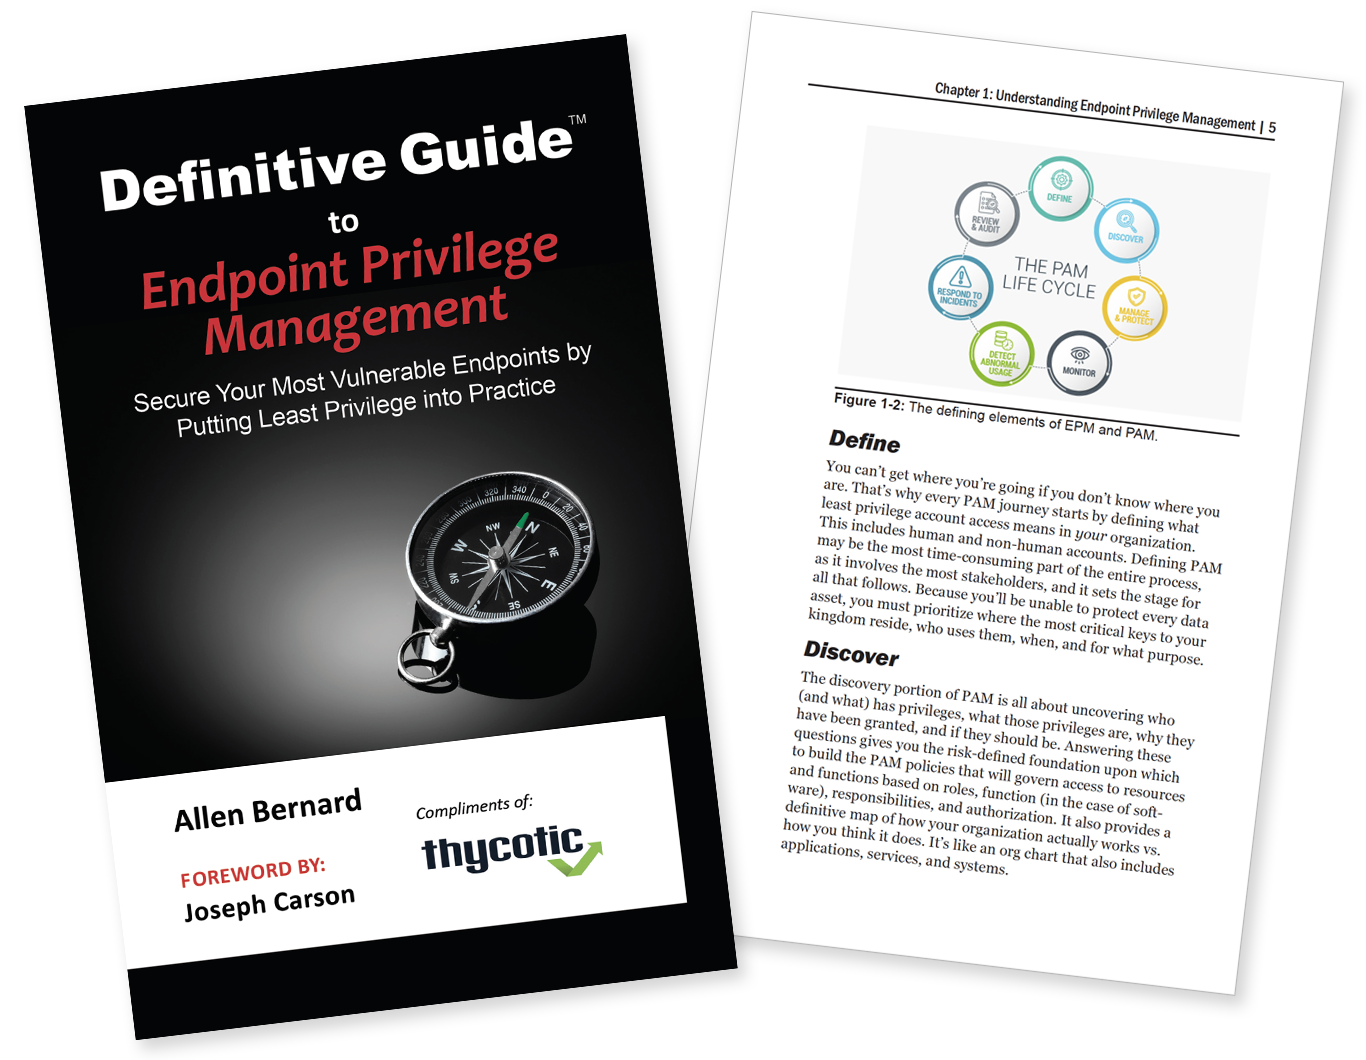 Presentation image for Definitive Guide to Endpoint Privilege Management